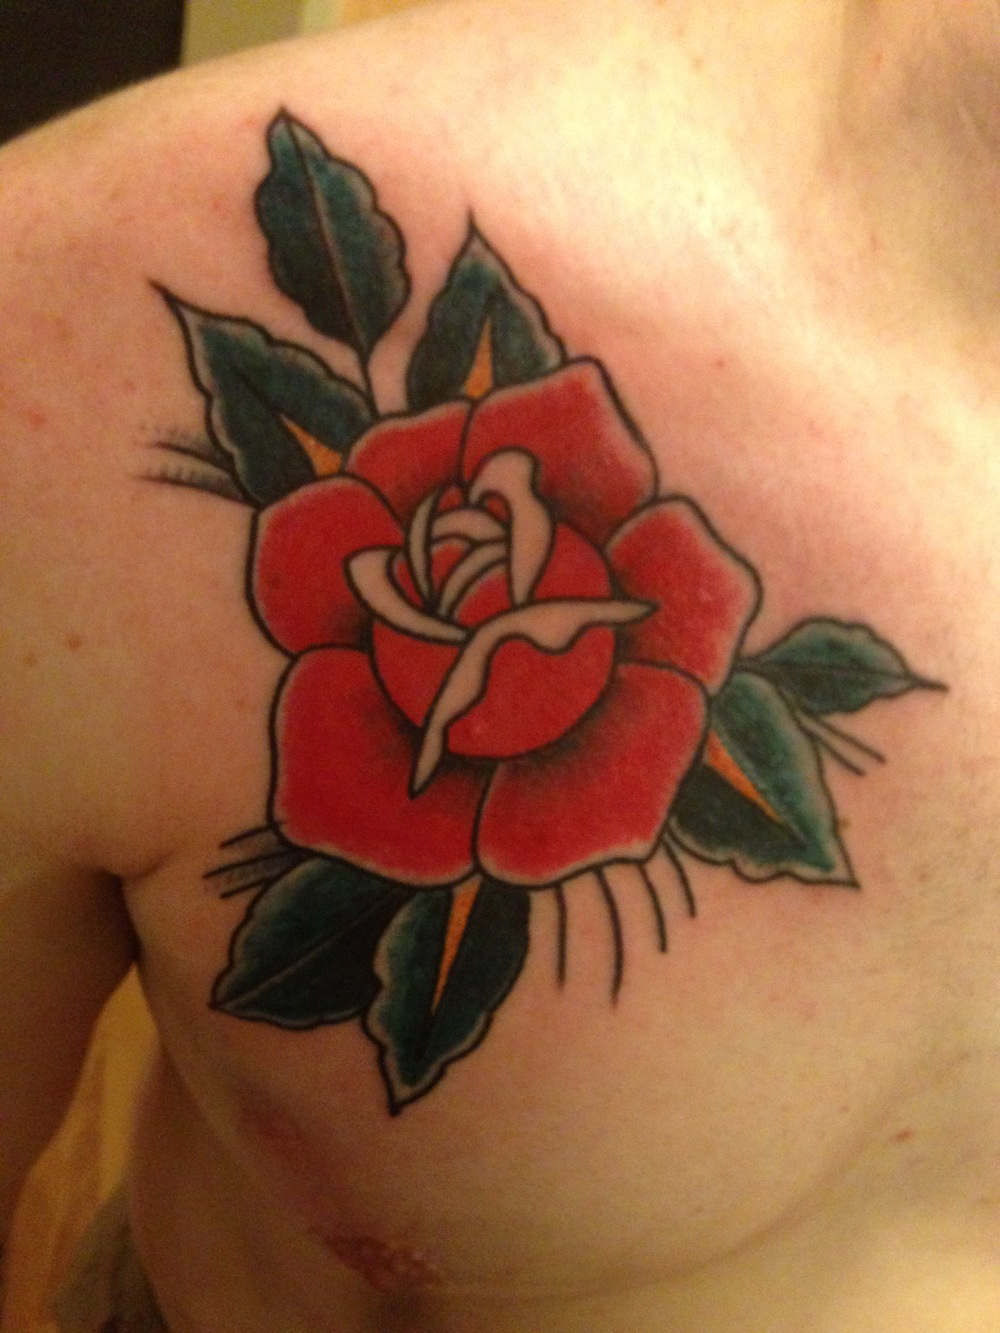 matt-lucci-tattoo-rose-traditional.JPG